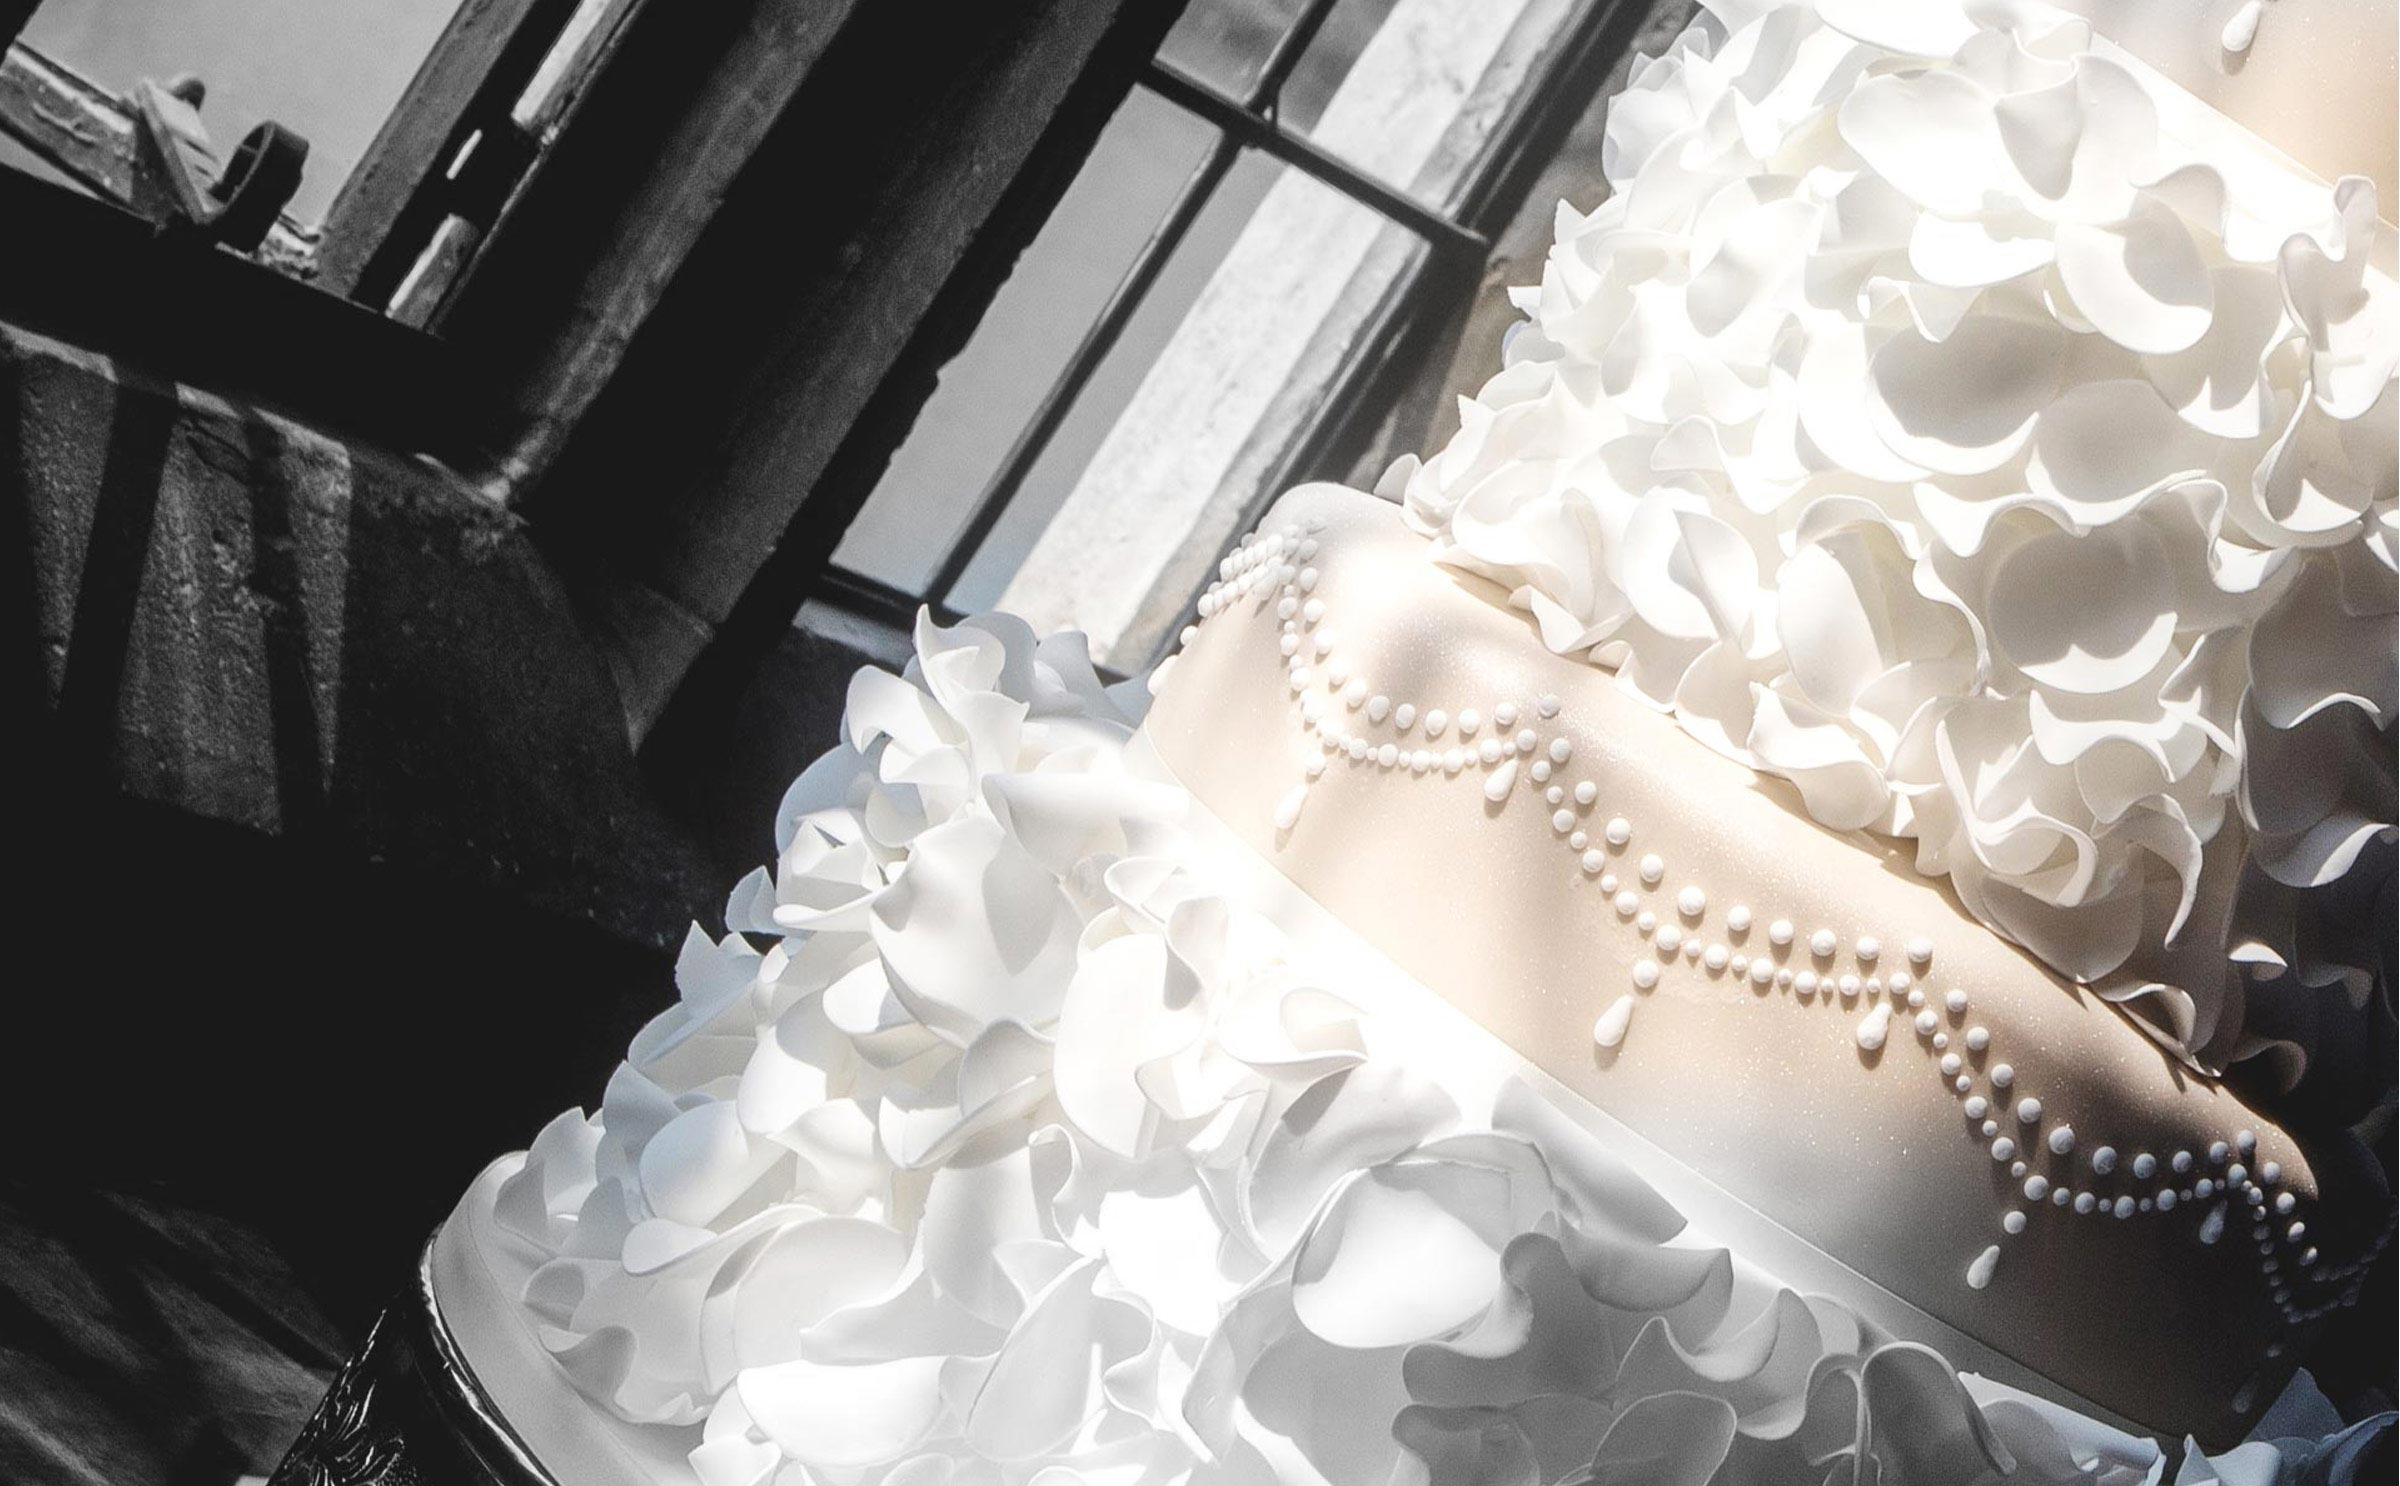 wedding cake close up & detailing